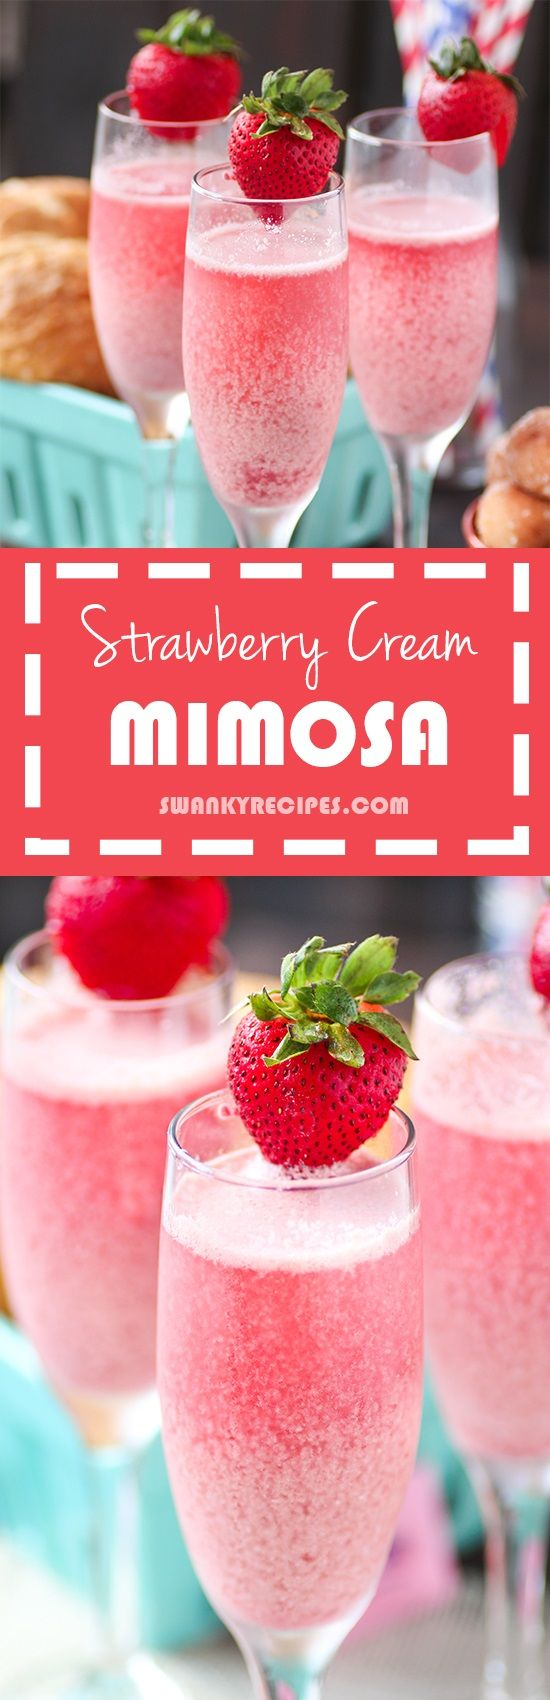 Strawberry Cream Mimoas - Perfect for brunch or holidays www.swankyrecipes.com #mimosa #brunch #strawberry